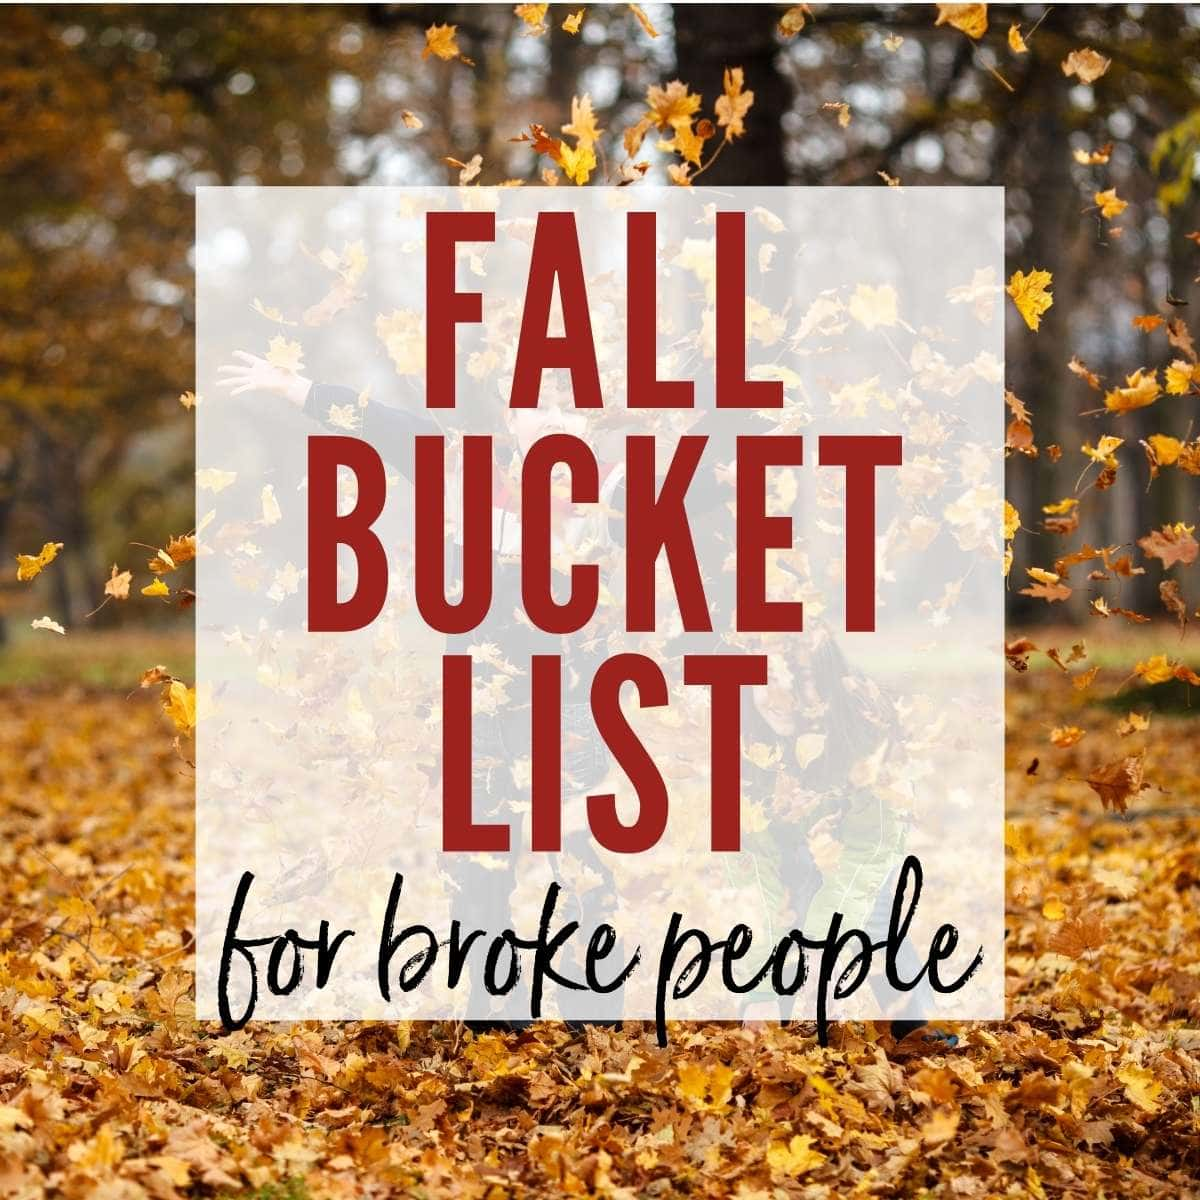 children playing in fallen leaves with fall bucket list for broke people graphic overlay